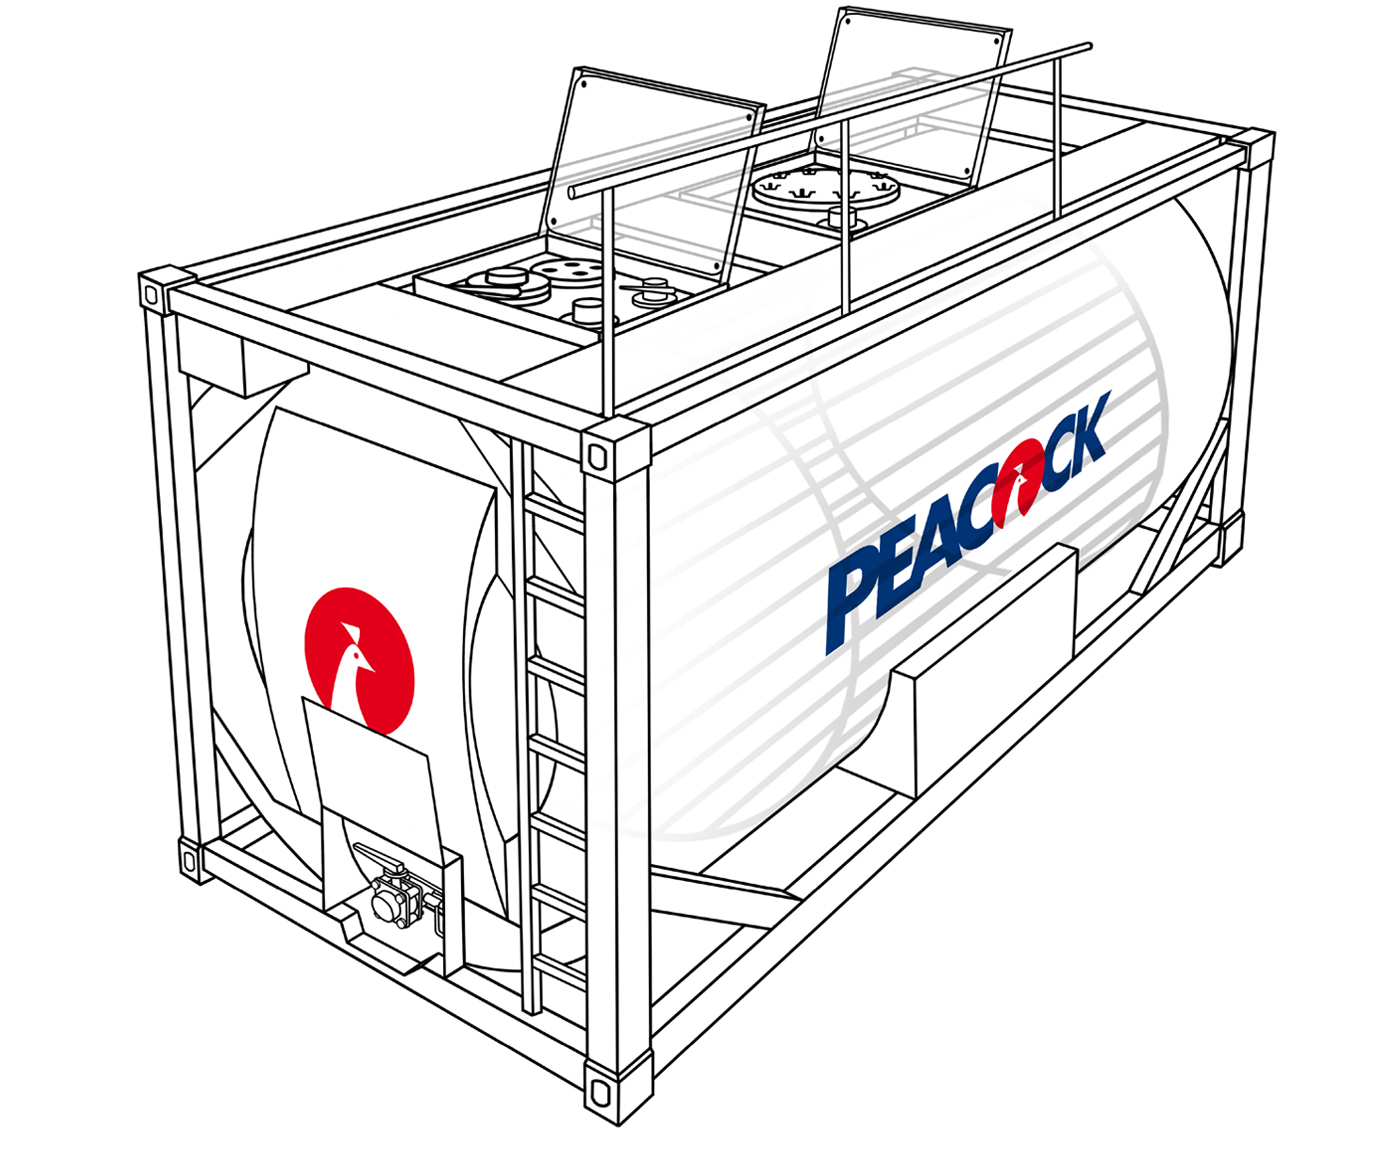 PEACOCK-Tank-Container-Lease-SPECIALIZED-TEMPERATURE-CONTROLLED-2-large.jpg